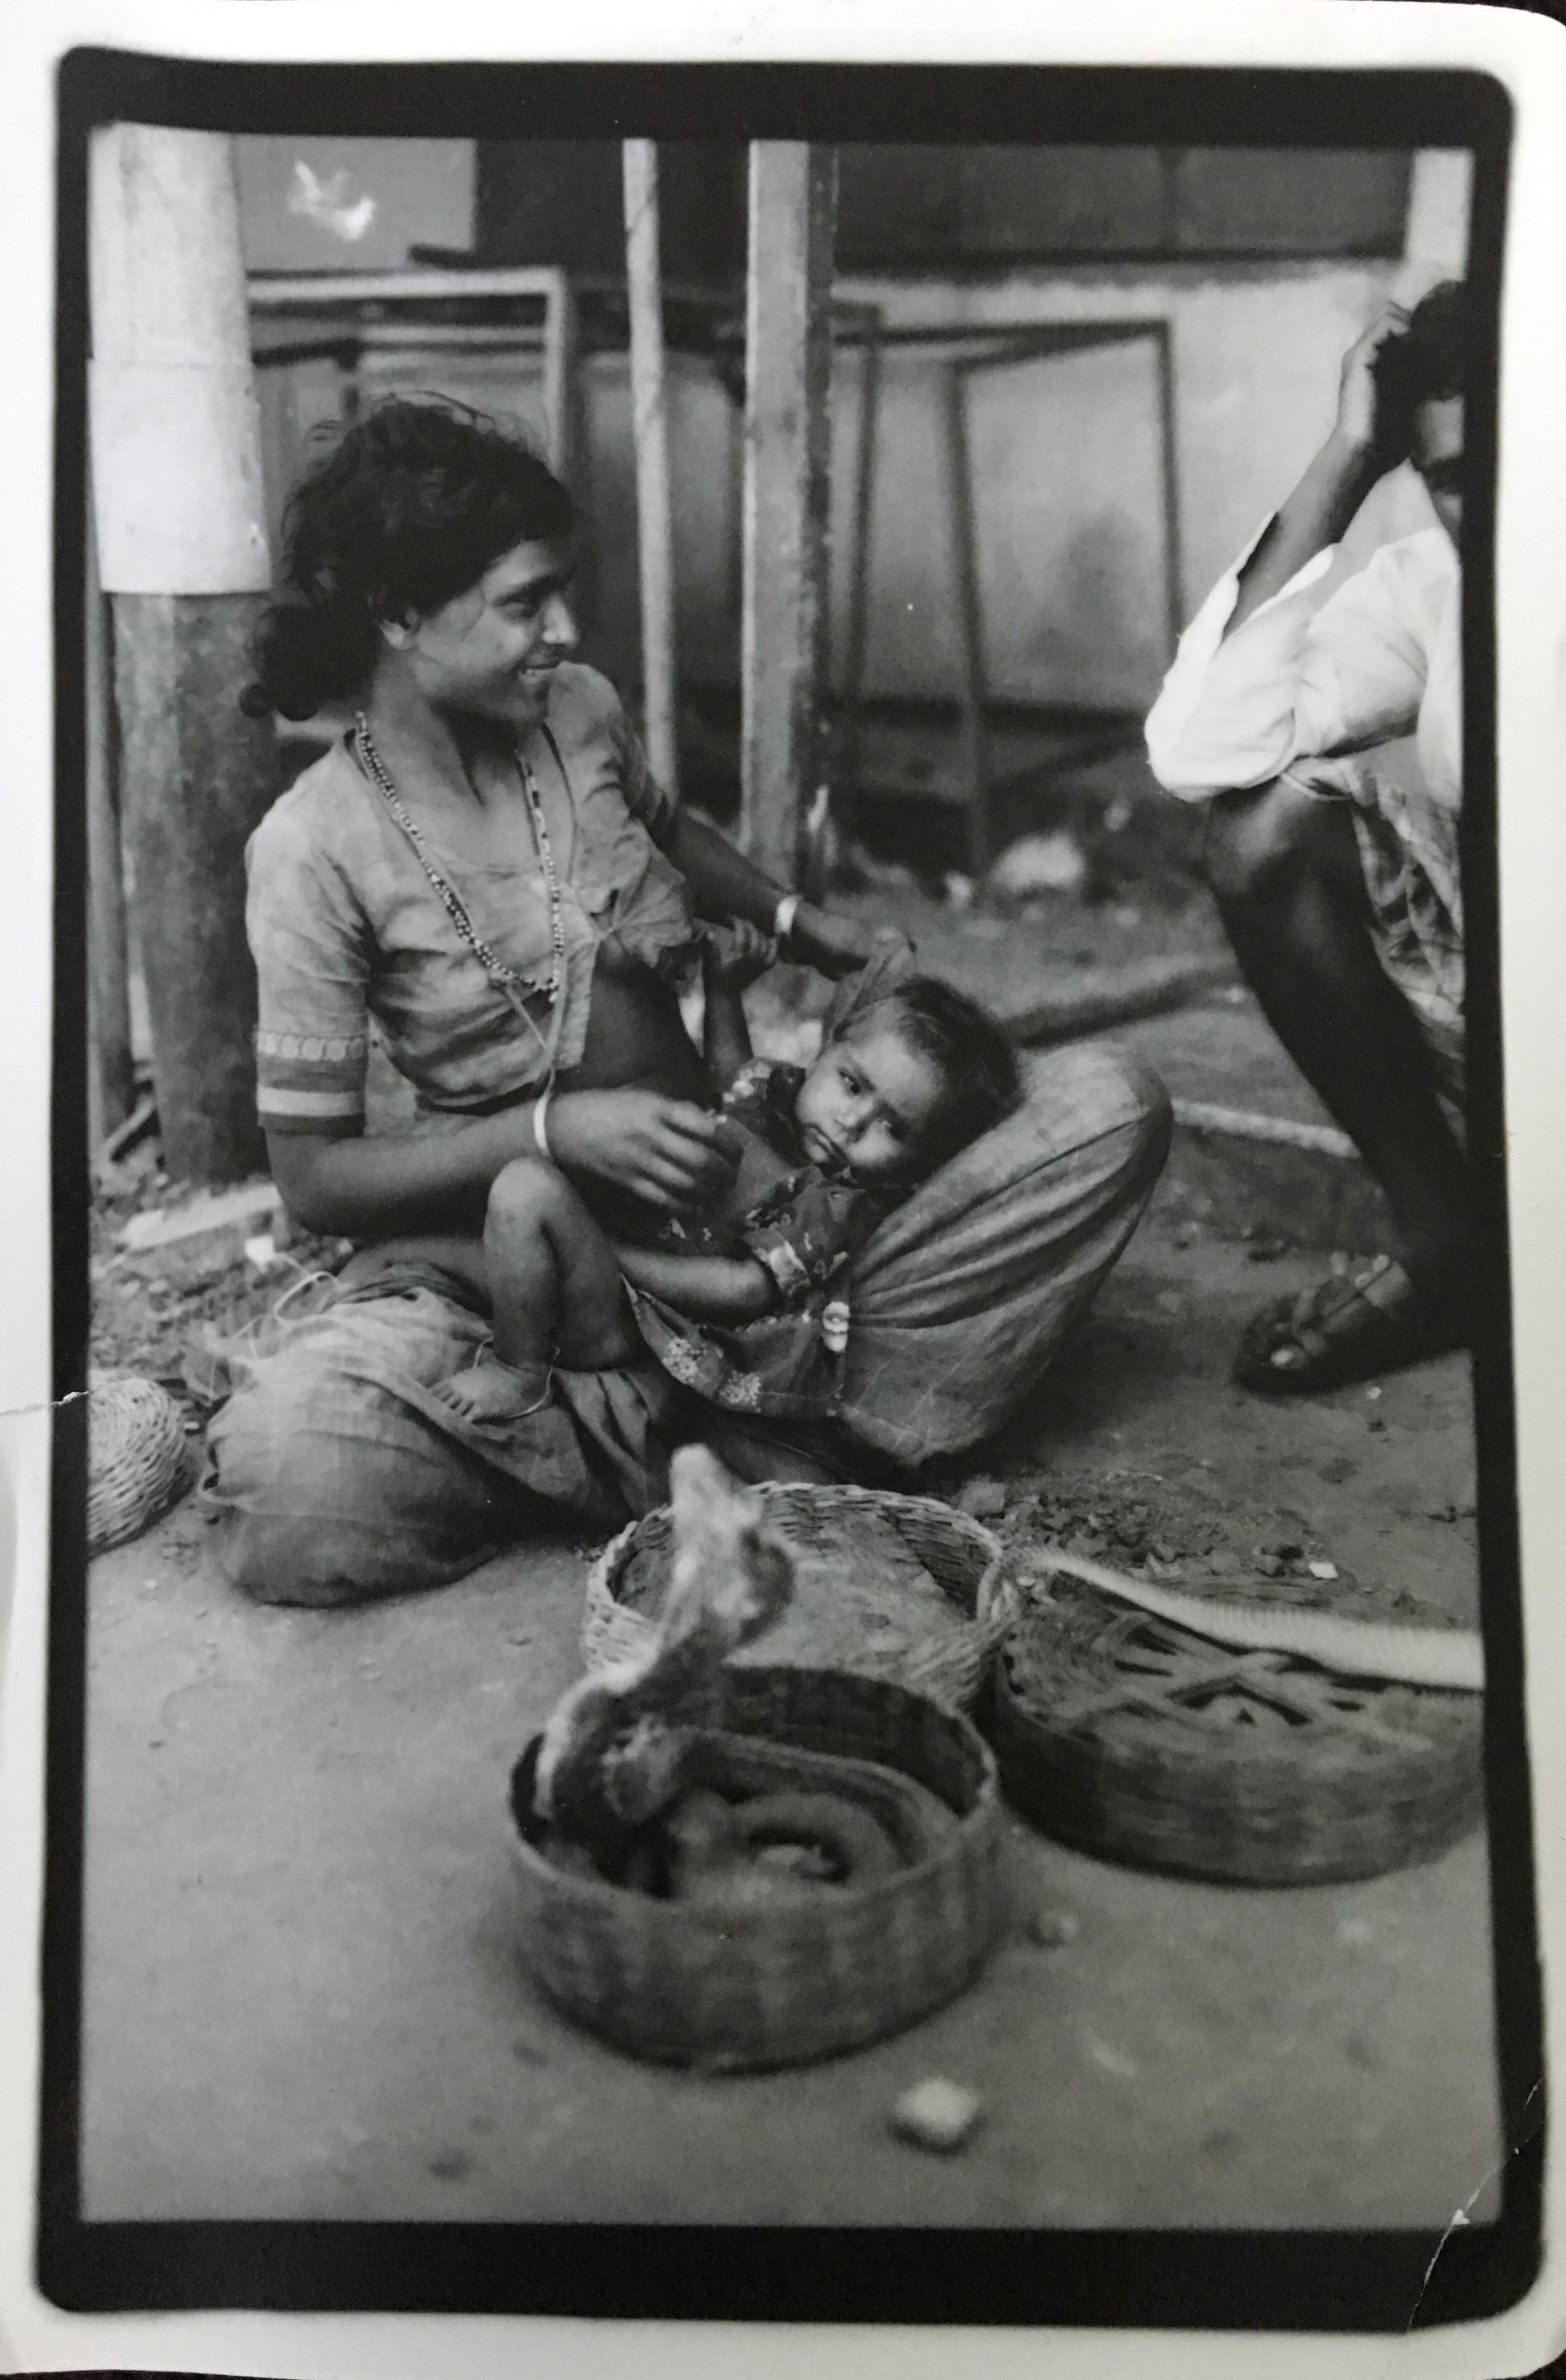 'Karnataka City Gypsy Cobra Family - in the back alley of Mapsa Goa, India 1997 - Derick Ion Almena' •  update  - it has been brought to my attention that this photo may not have been taken by Derick, but by an ex who was with him in India – that he claimed it as his, despite knowing she'd snapped it. Though I can't confirm this, I think it's fair to acknowledge the question of its origins.